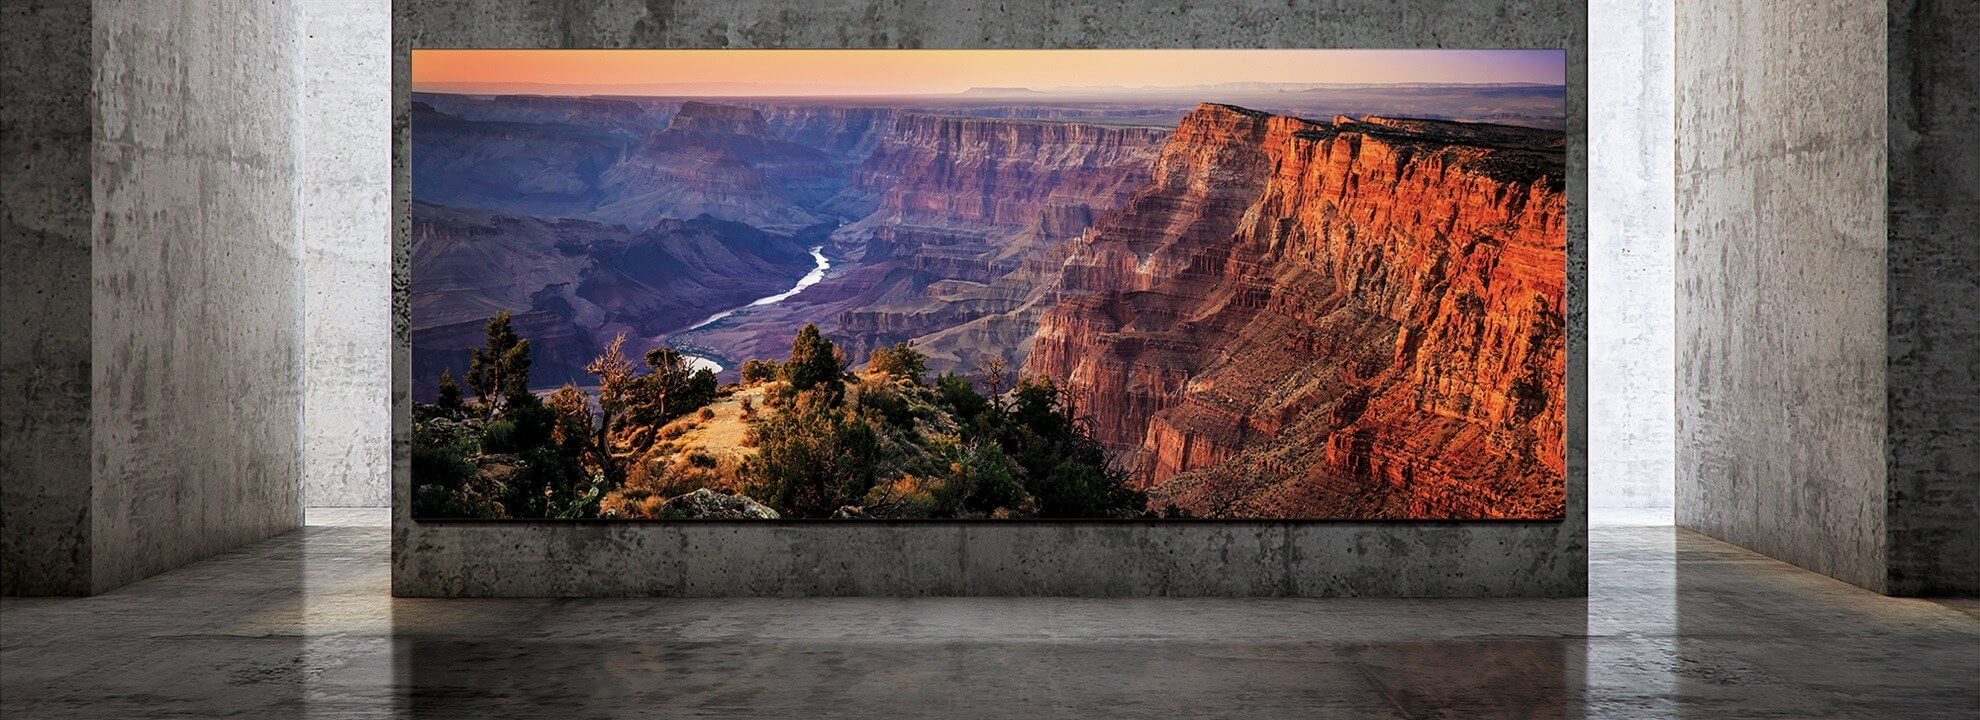 Samsung's massive The Wall TV is now available in a 292-inch, 8K luxury version